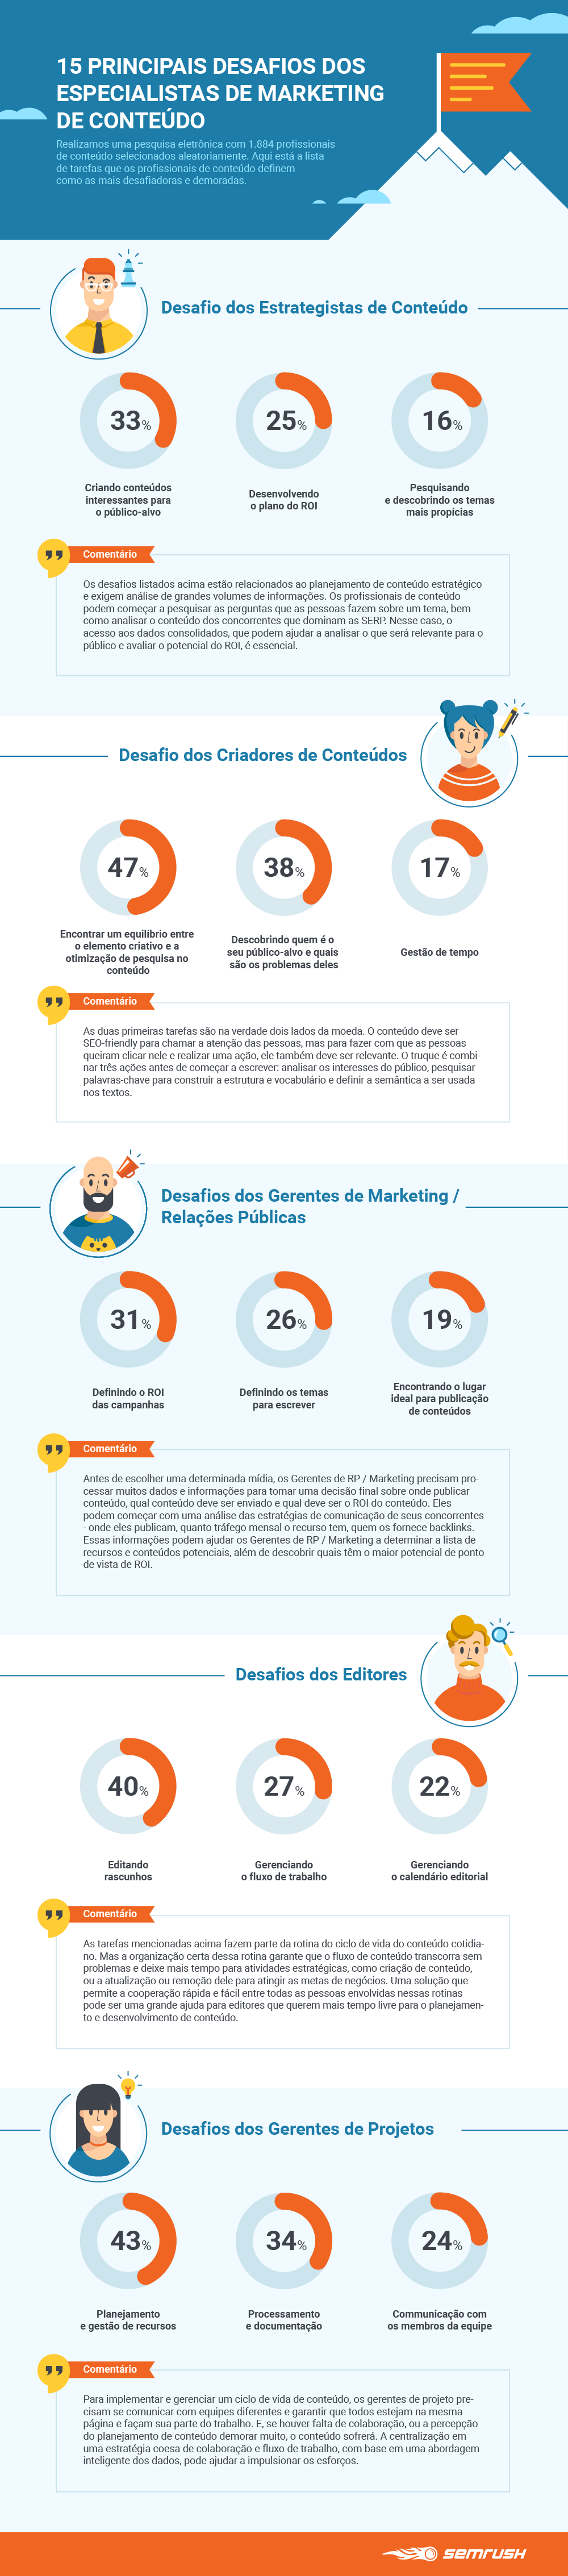 semrush-smi-reserch-infographic-br-01.png